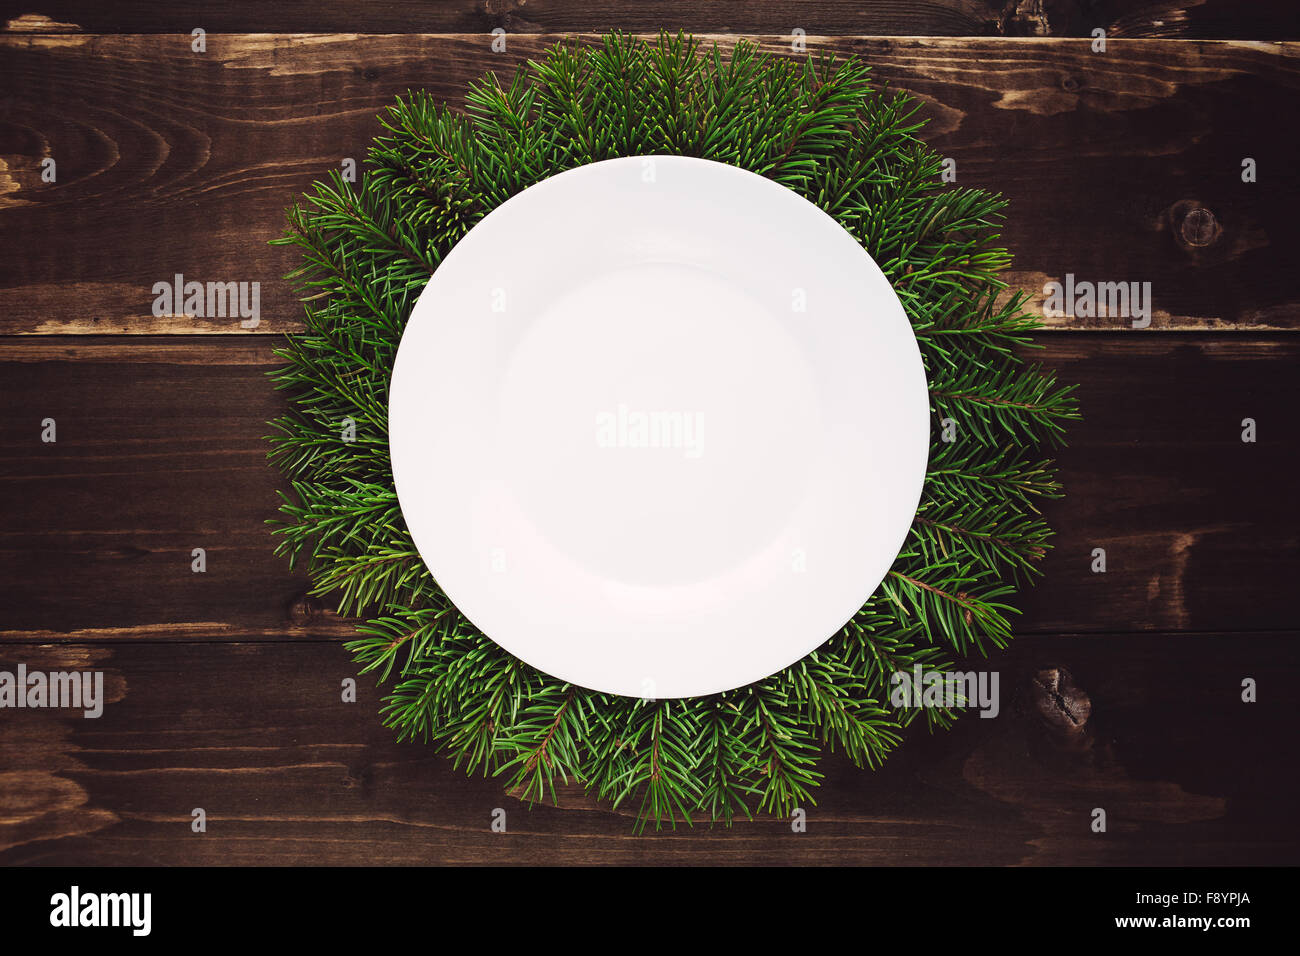 Christmas food frame on the wooden table - Stock Image